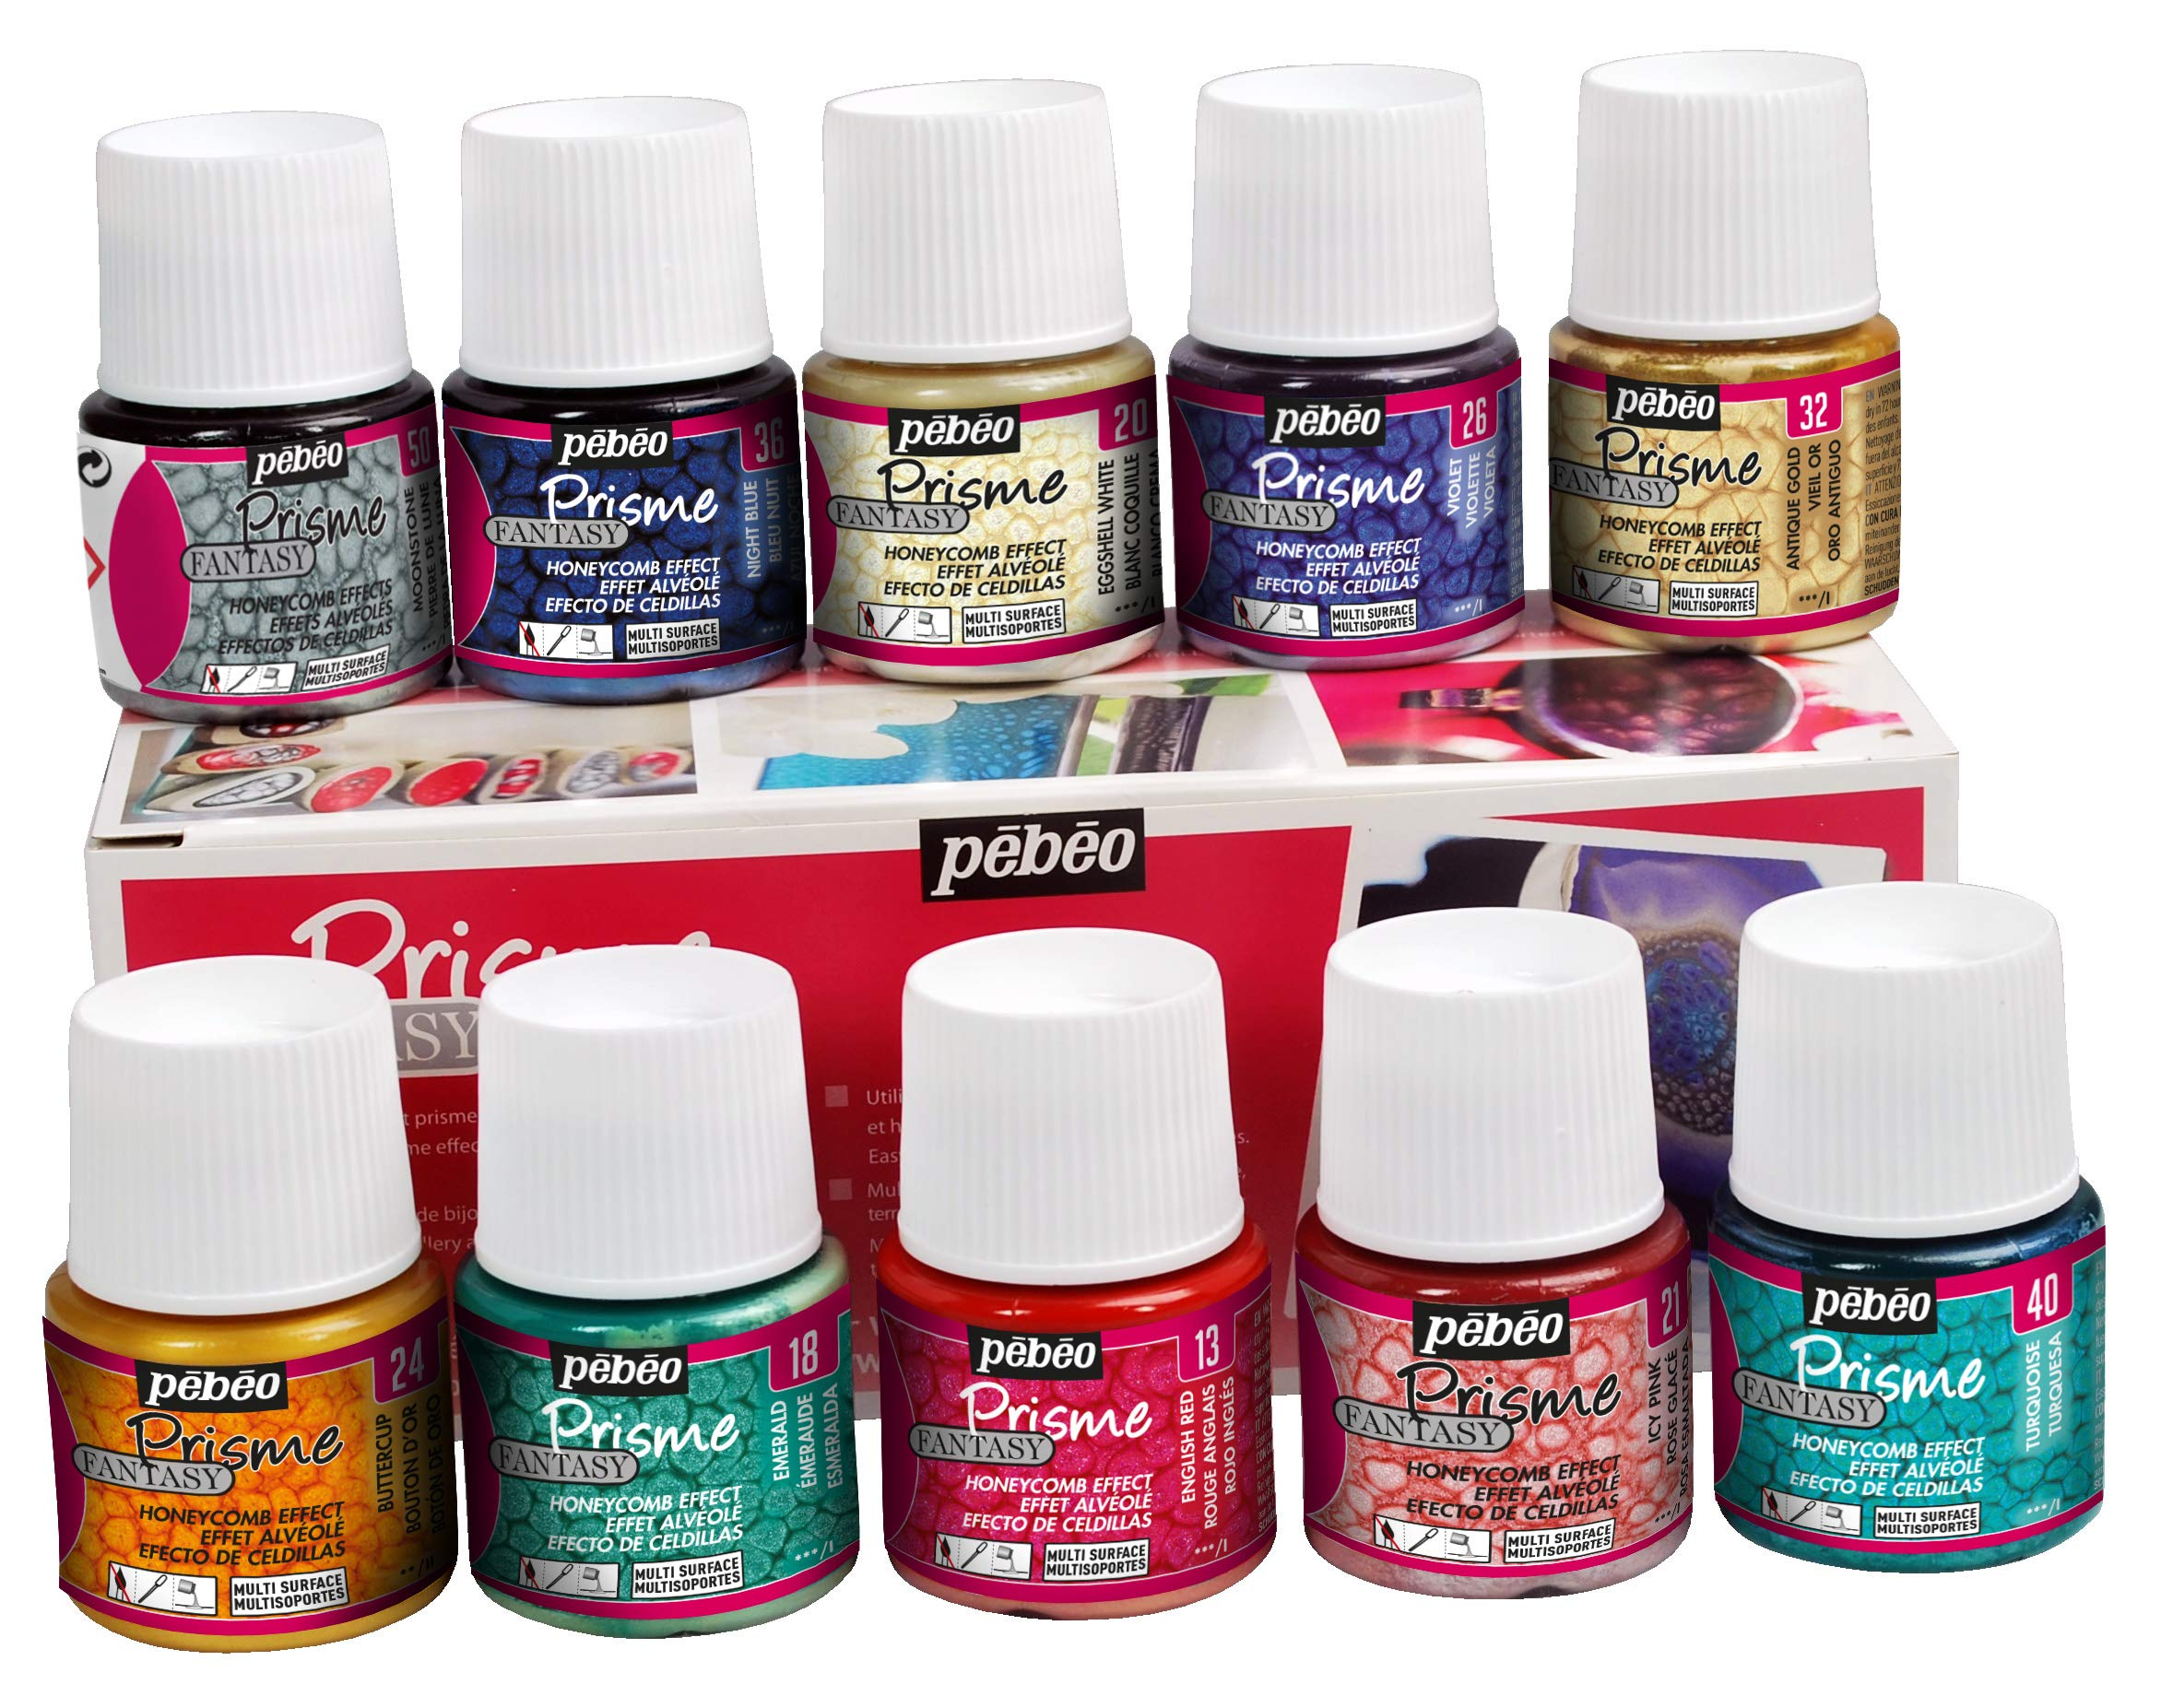 Pebeo Fantasy Prisme, Set of 10 Assorted 45 ml Bottles by PEBEO